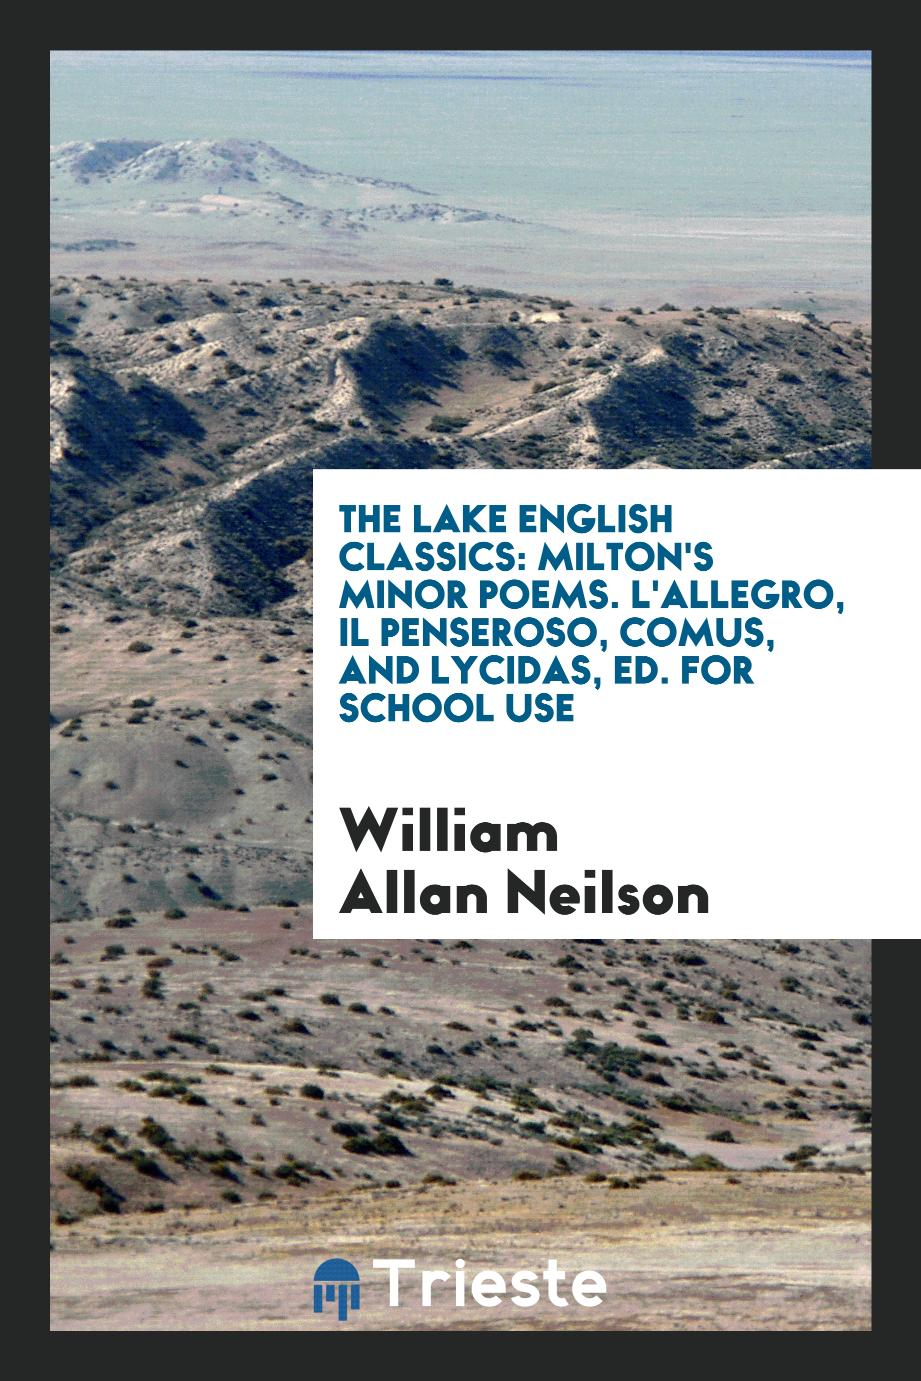 The Lake English Classics: Milton's Minor Poems. L'allegro, Il Penseroso, Comus, and Lycidas, Ed. For School Use